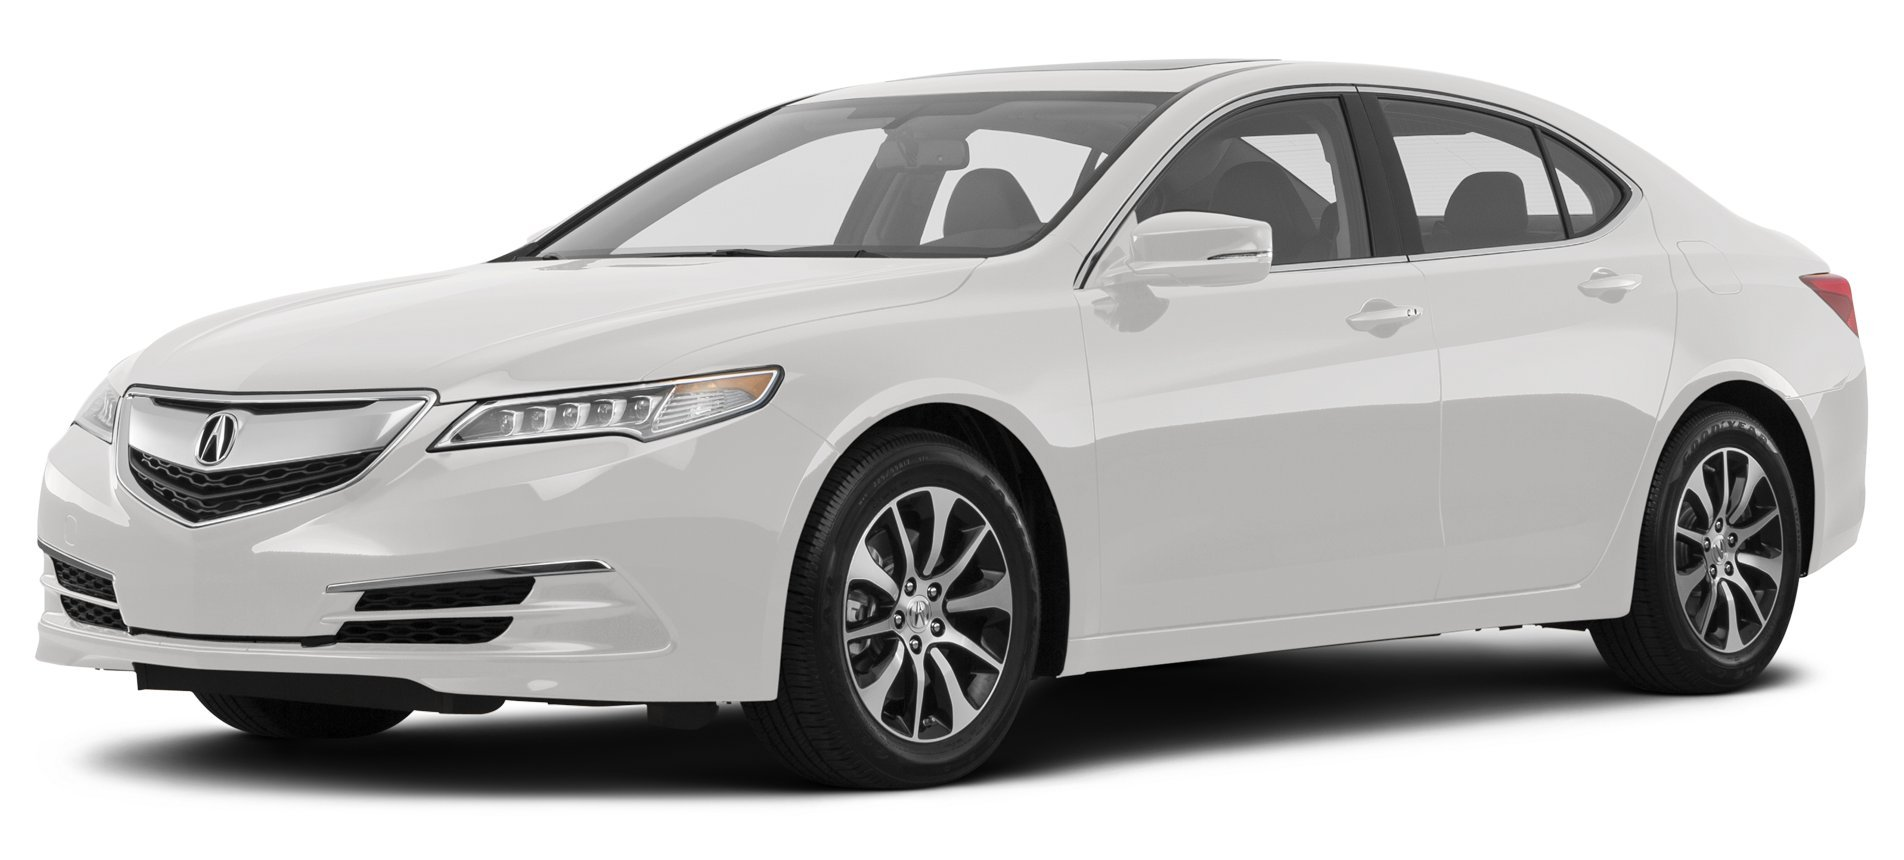 2017 acura tlx reviews images and specs vehicles. Black Bedroom Furniture Sets. Home Design Ideas